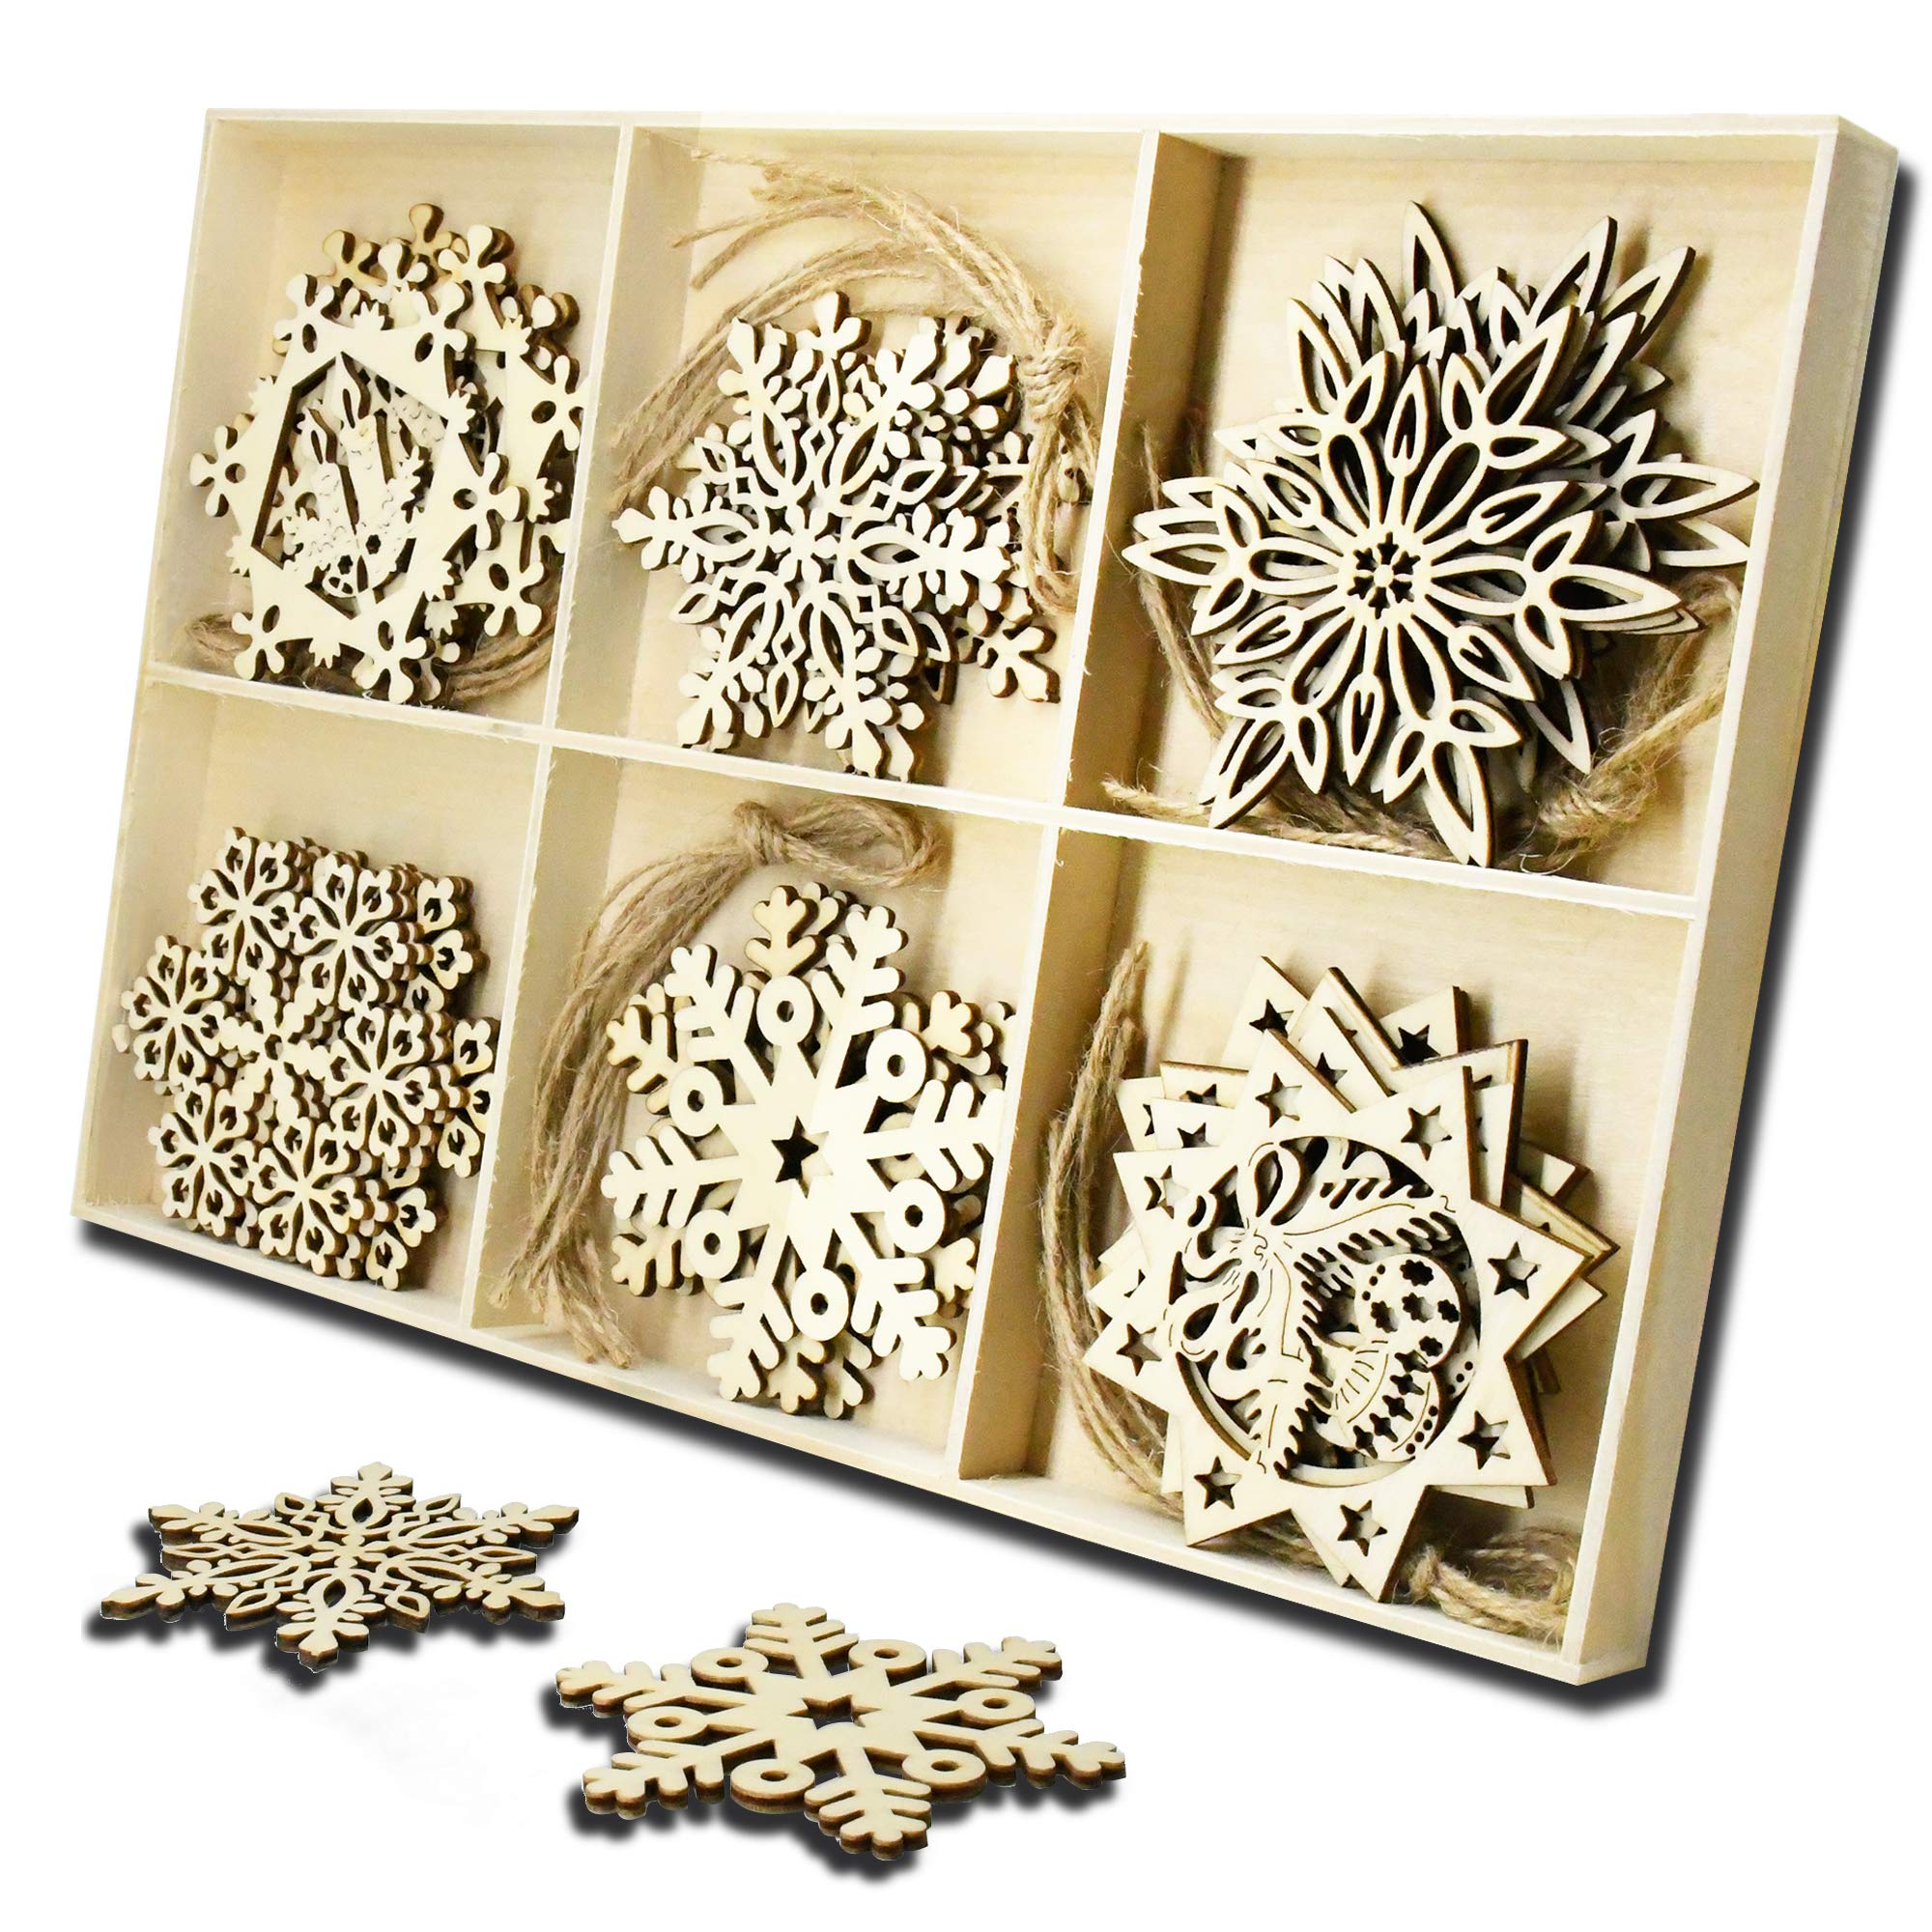 YuQi 30pcs Wooden Snowflake Shapes-Unfinished Wood Ornaments Crafts for Home Decor Blanks,Christmas Tree Hanging Ornament Sets Embellishments with Natural Twine Kits (6 Snowflake Styles)